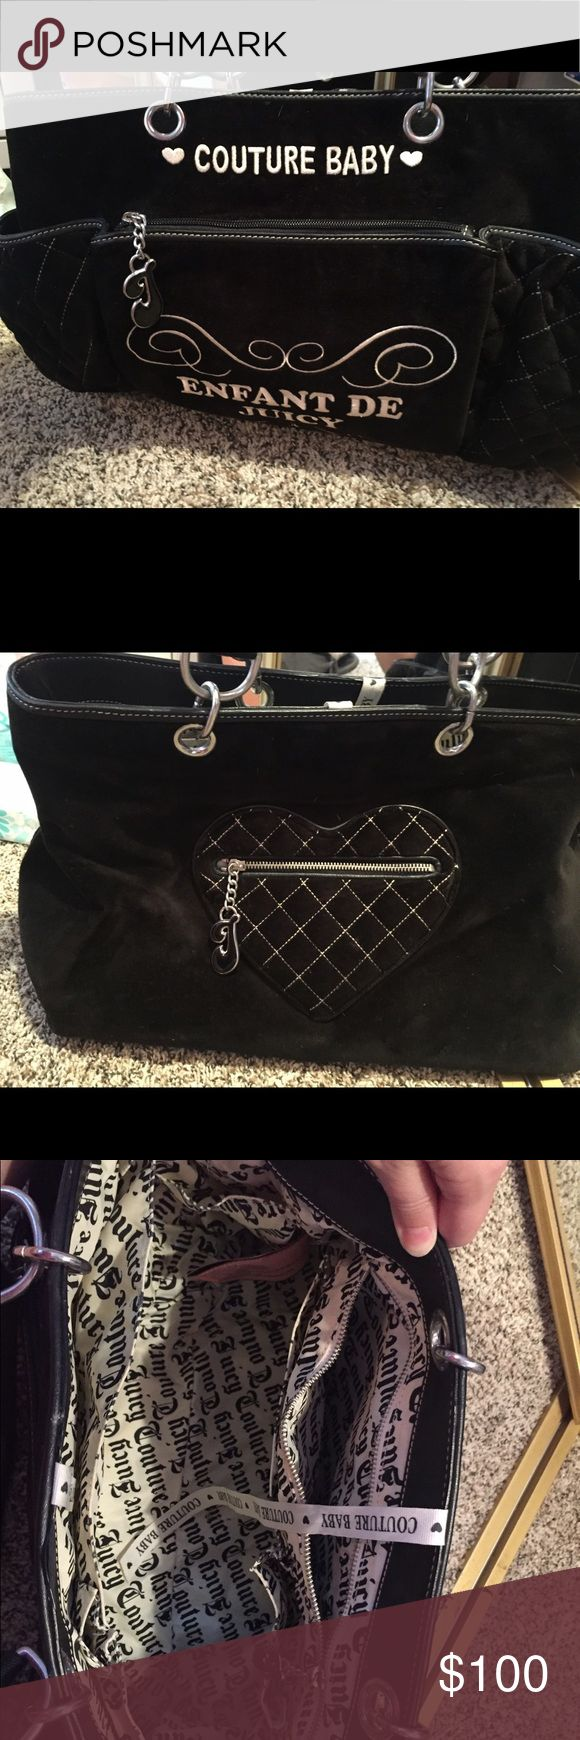 Juicy Couture Diaper Bag Excellent Condition, only used a handful of times. Bought in Las Vegas at Juicy Couture store for $450. Juicy Couture Bags Baby Bags